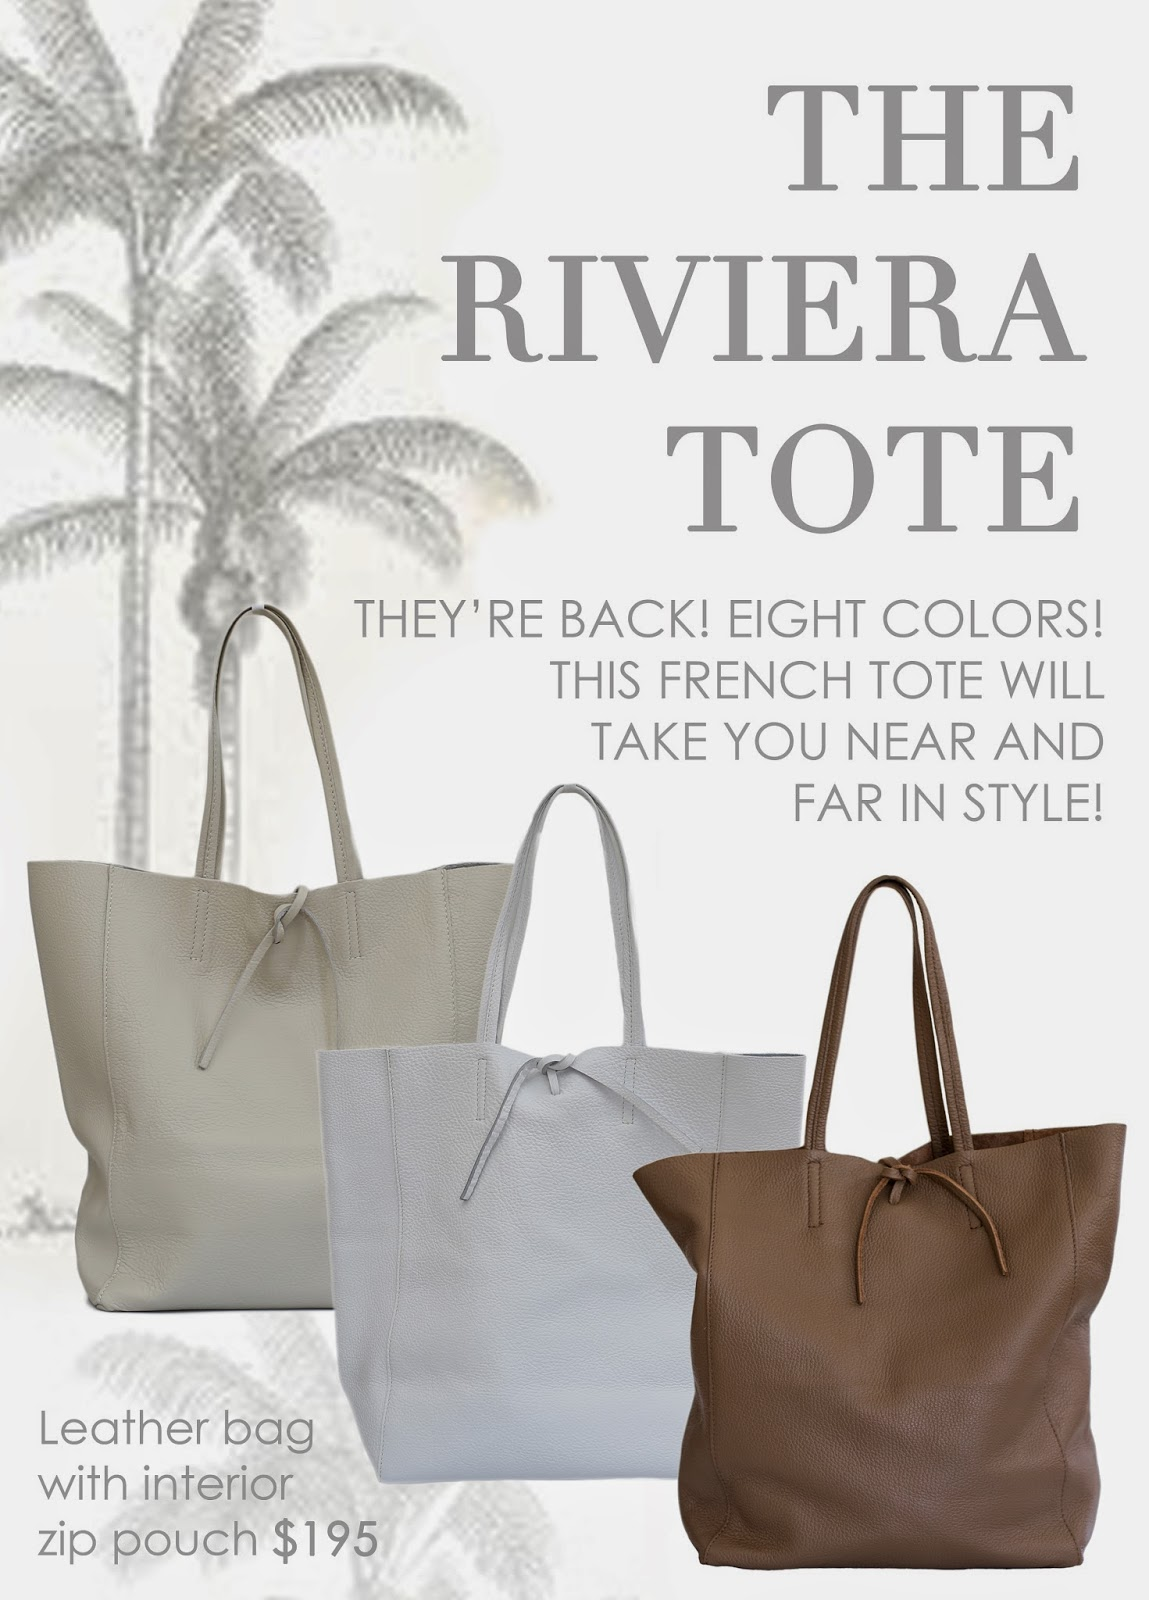 Black, ivory or dark brown Riviera Tote available again at Maison K Santa Barbara